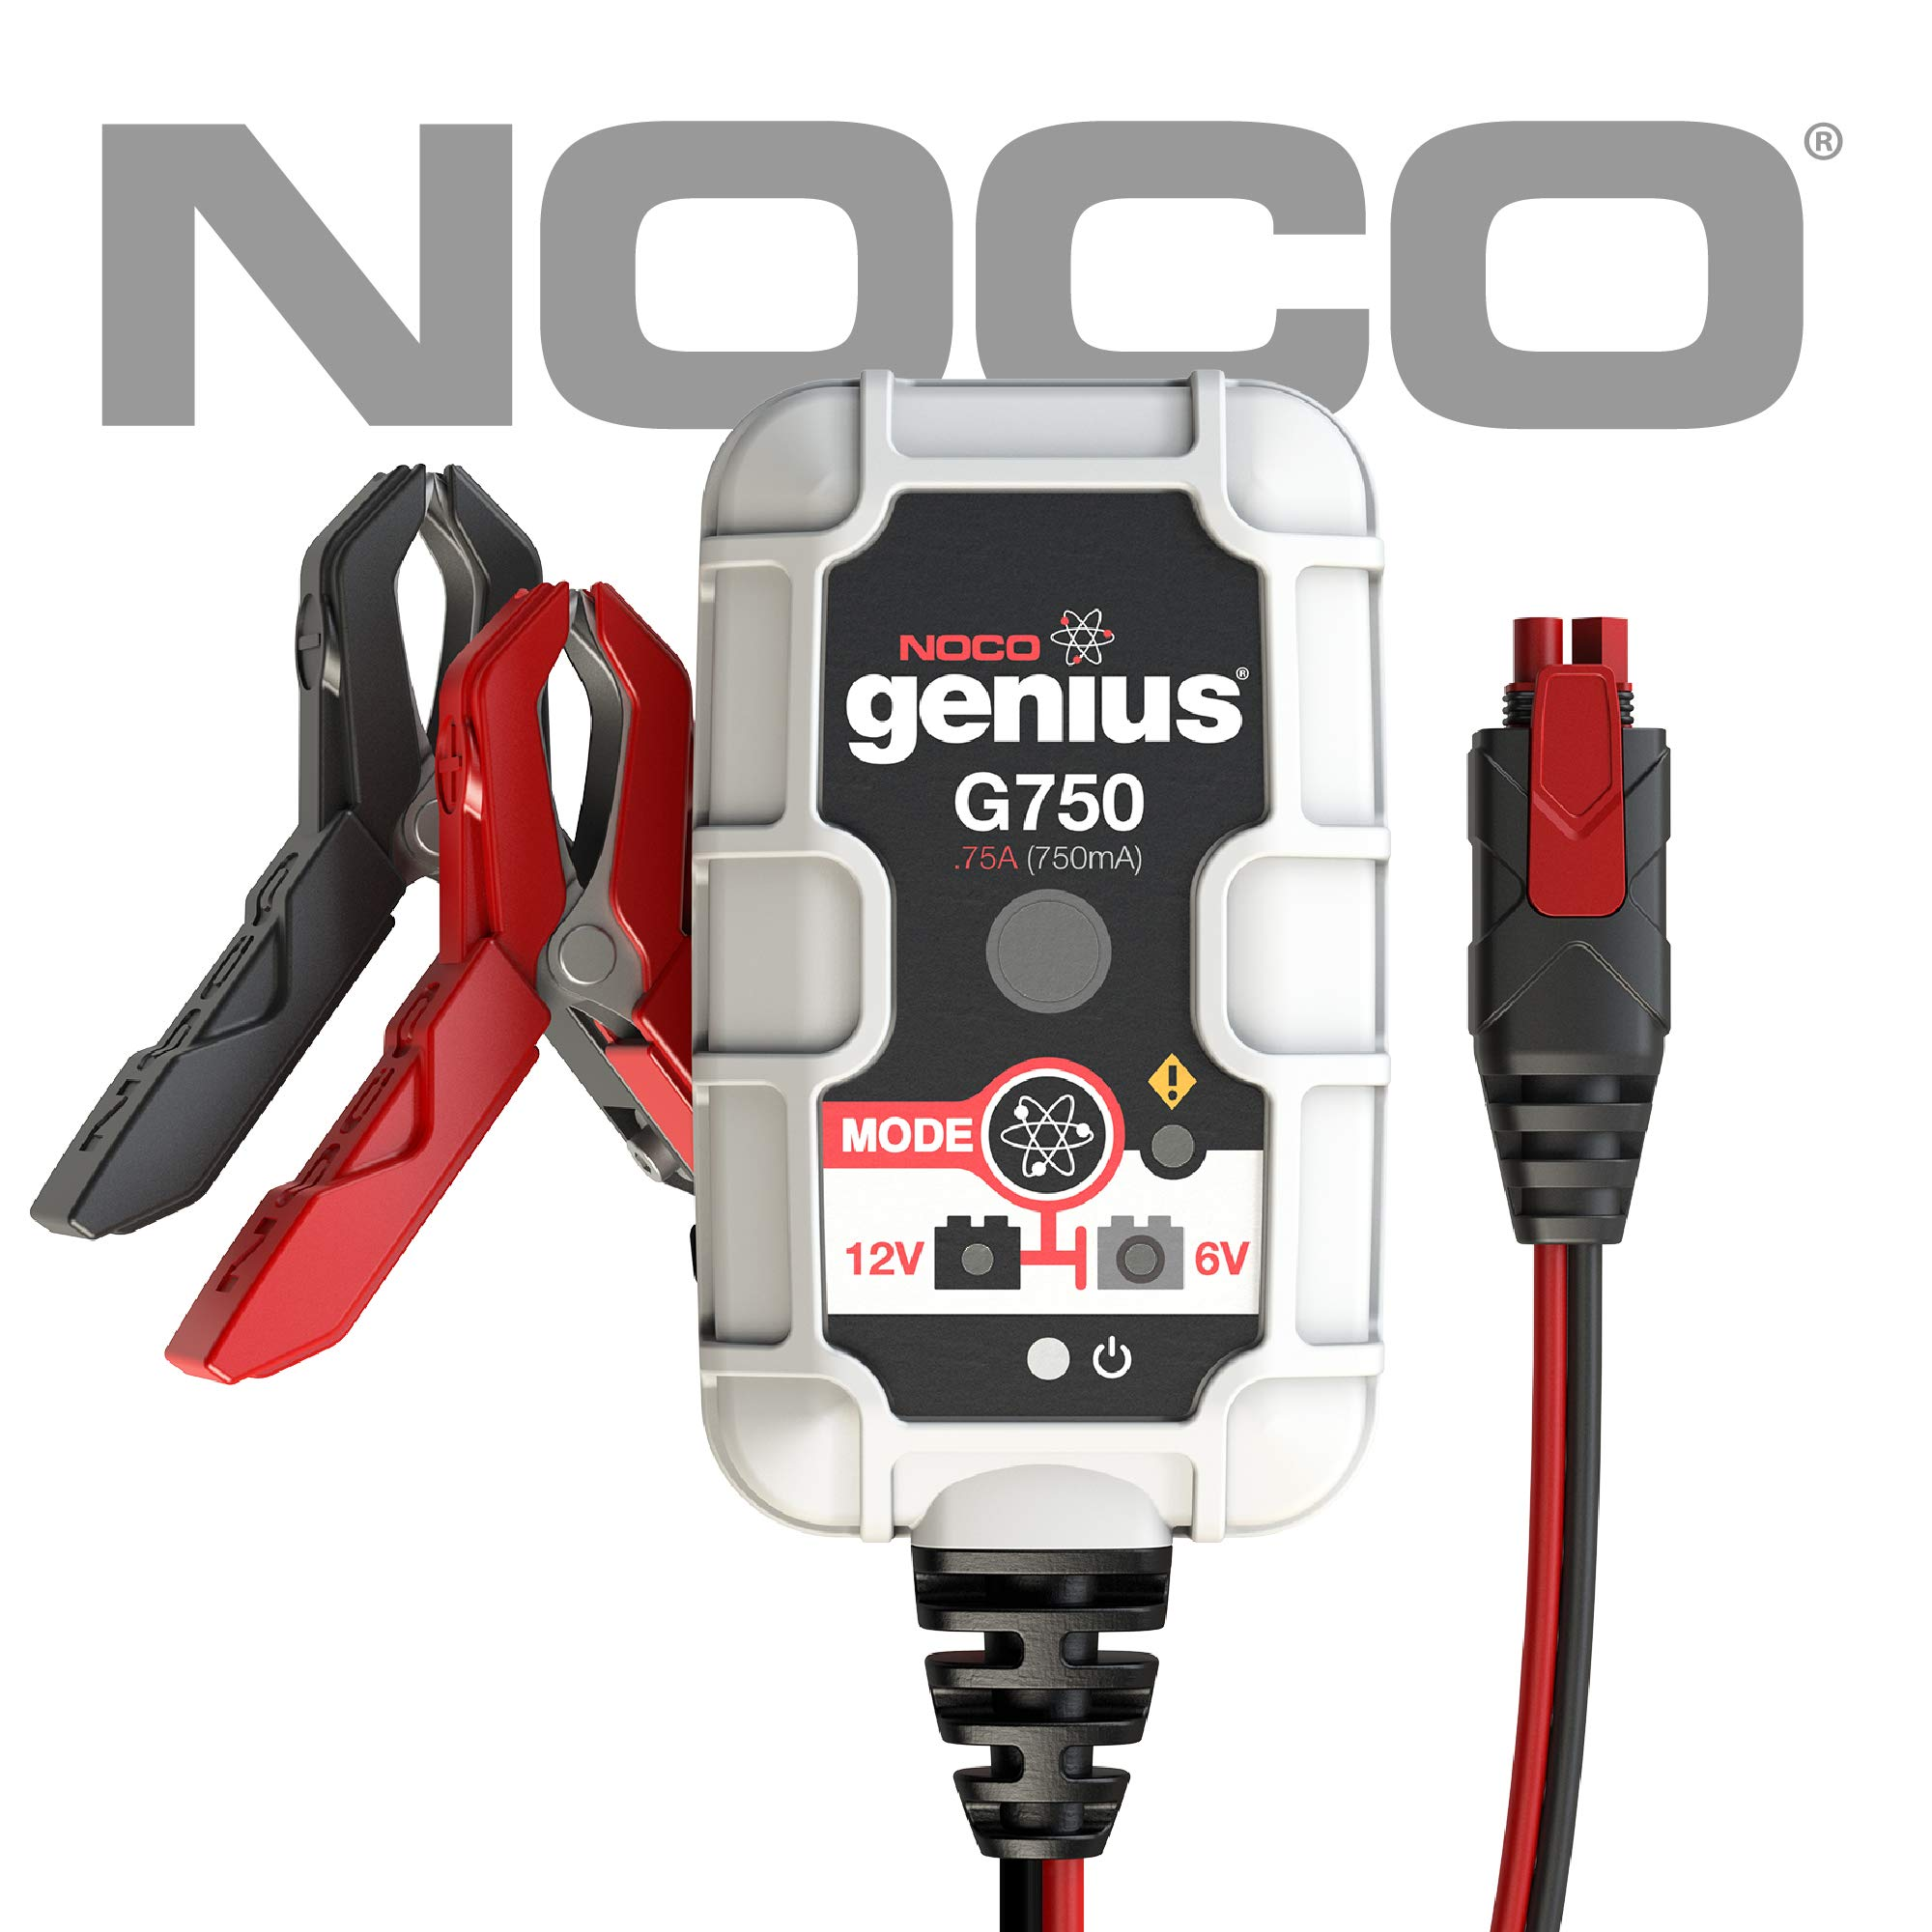 NOCO Genius G750 6V/12V .75 Amp Battery Charger and Maintainer product image